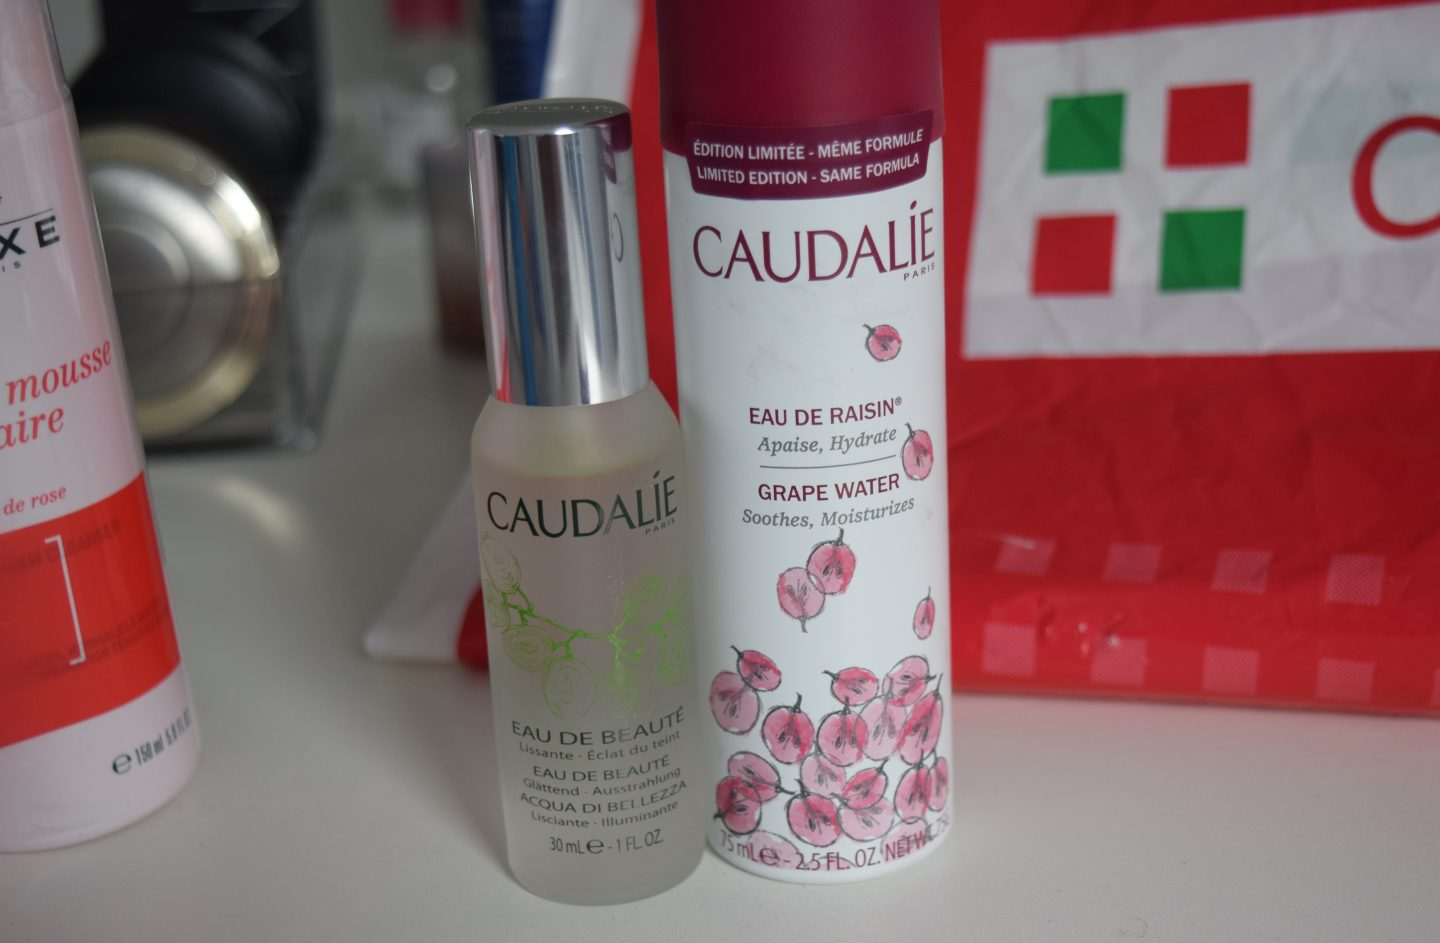 Caudalie Beauty Elixer and Grape Water